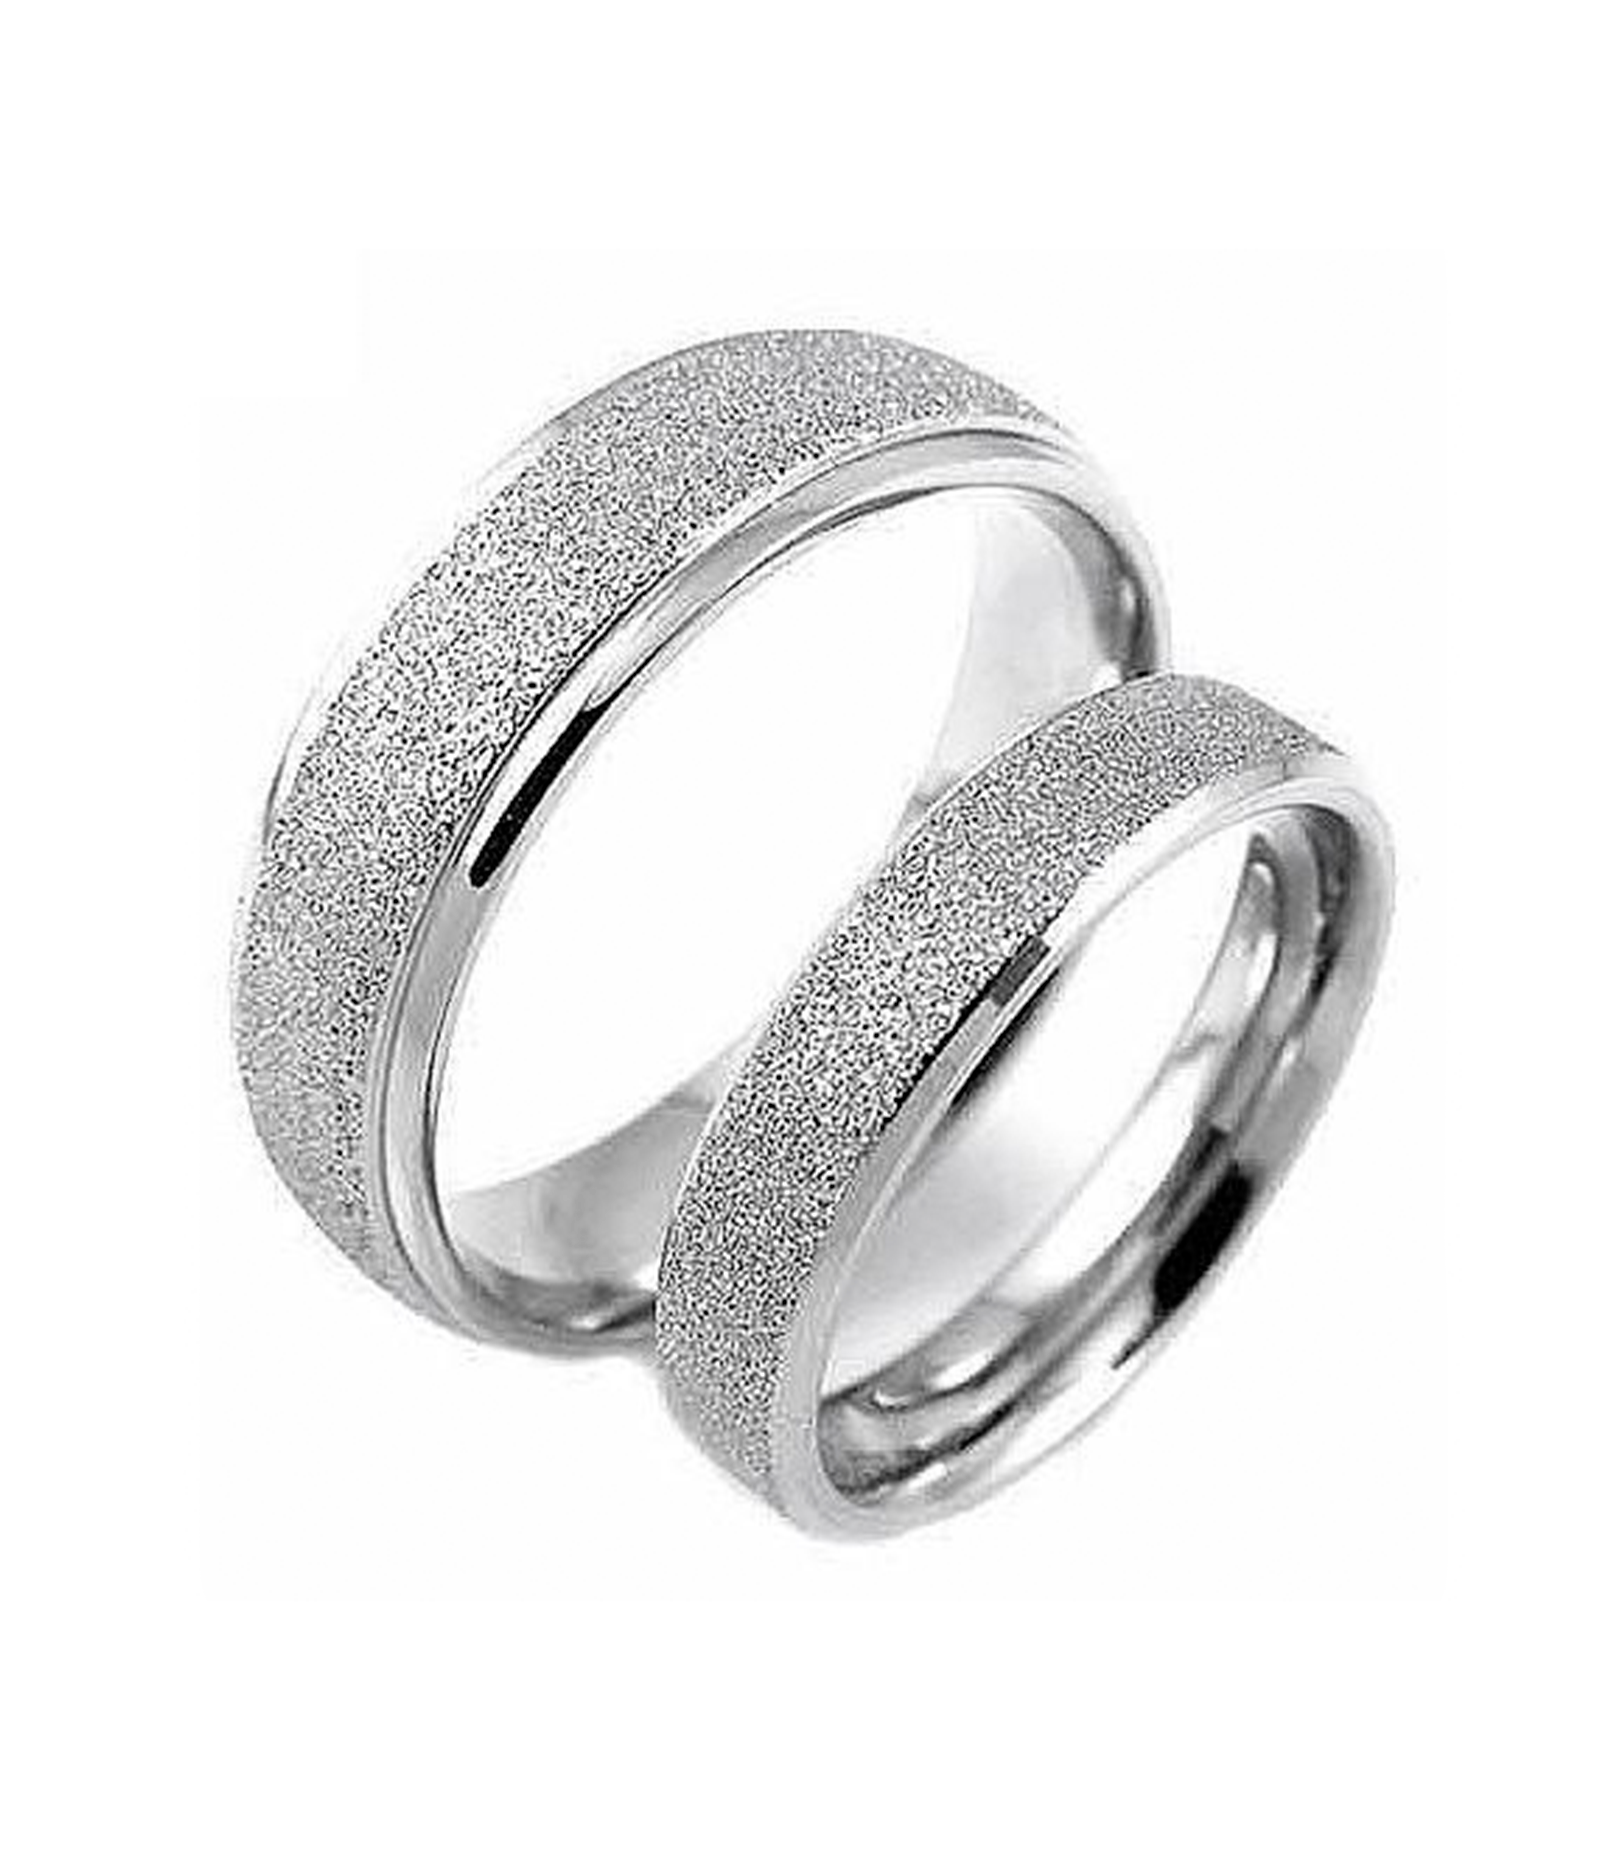 Silver Matte Titanium Couple Ring